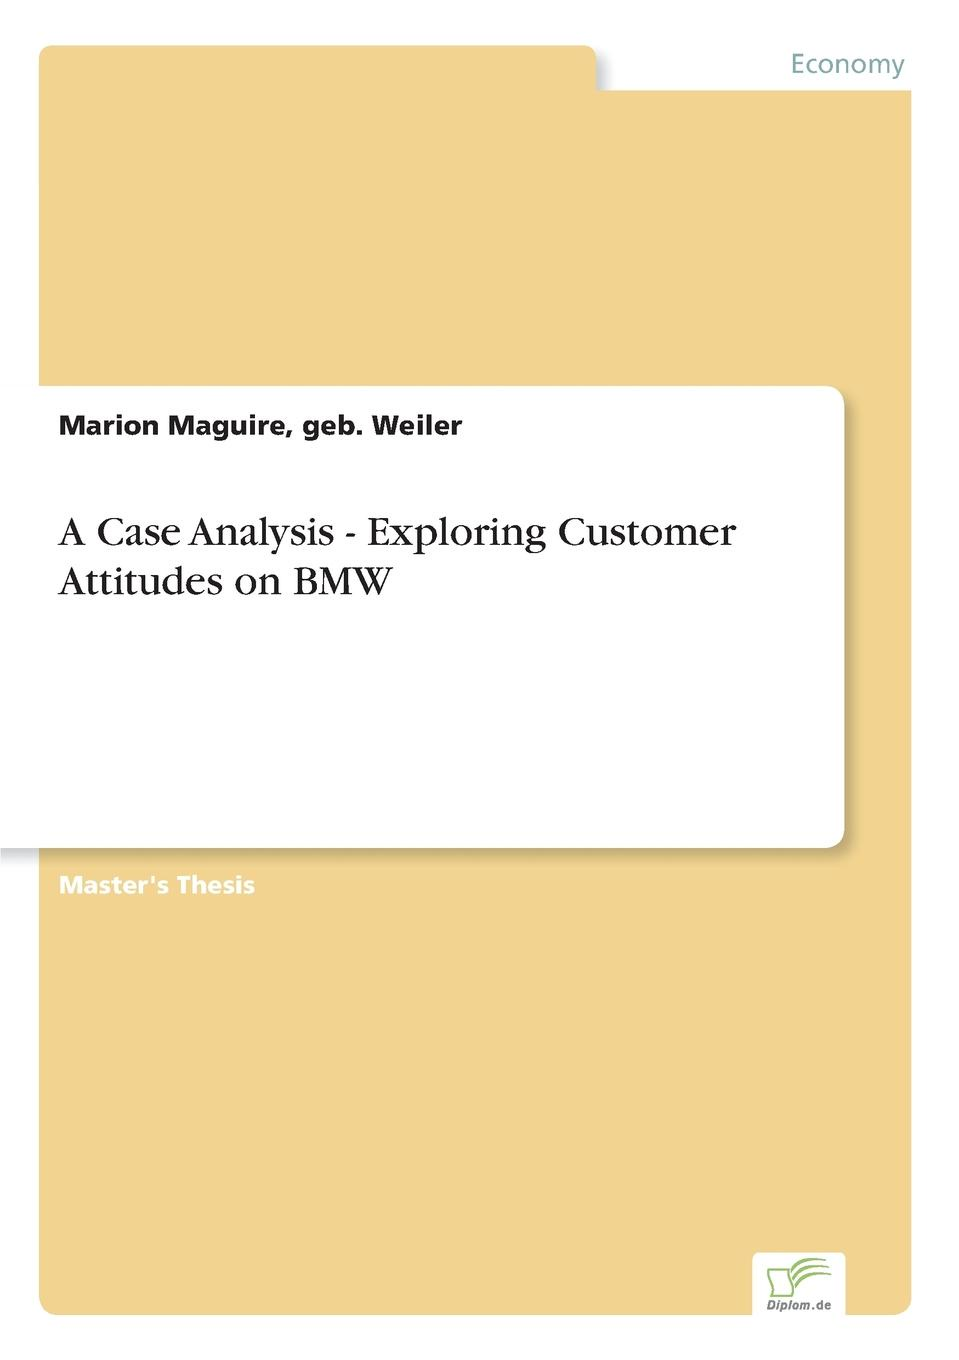 geb. Weiler Marion Maguire A Case Analysis - Exploring Customer Attitudes on BMW andrew frawley igniting customer connections fire up your company s growth by multiplying customer experience and engagement